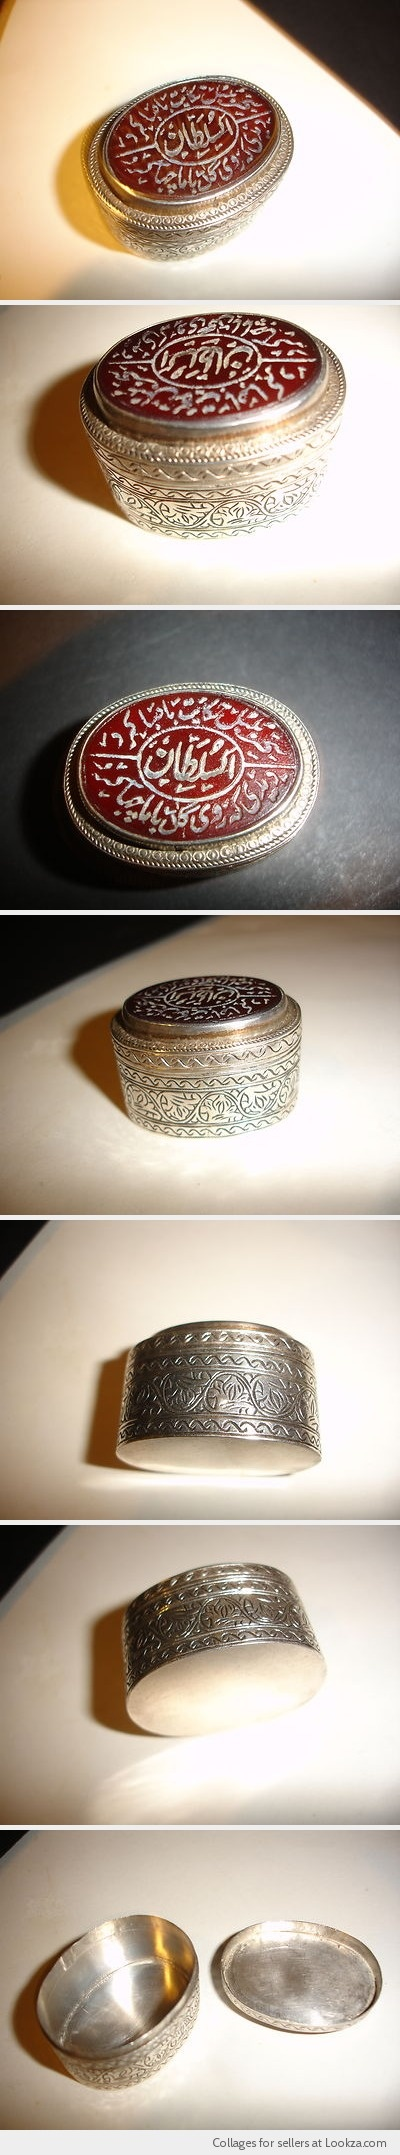 VINTAGE ENGRAVED SILVER PILL BOX CORNELIAN INTAGLIO ARABIC ISLAMIC CALIGRAPHY .$199 BUY it NOW/OFFERS   - Found on Lookza.com